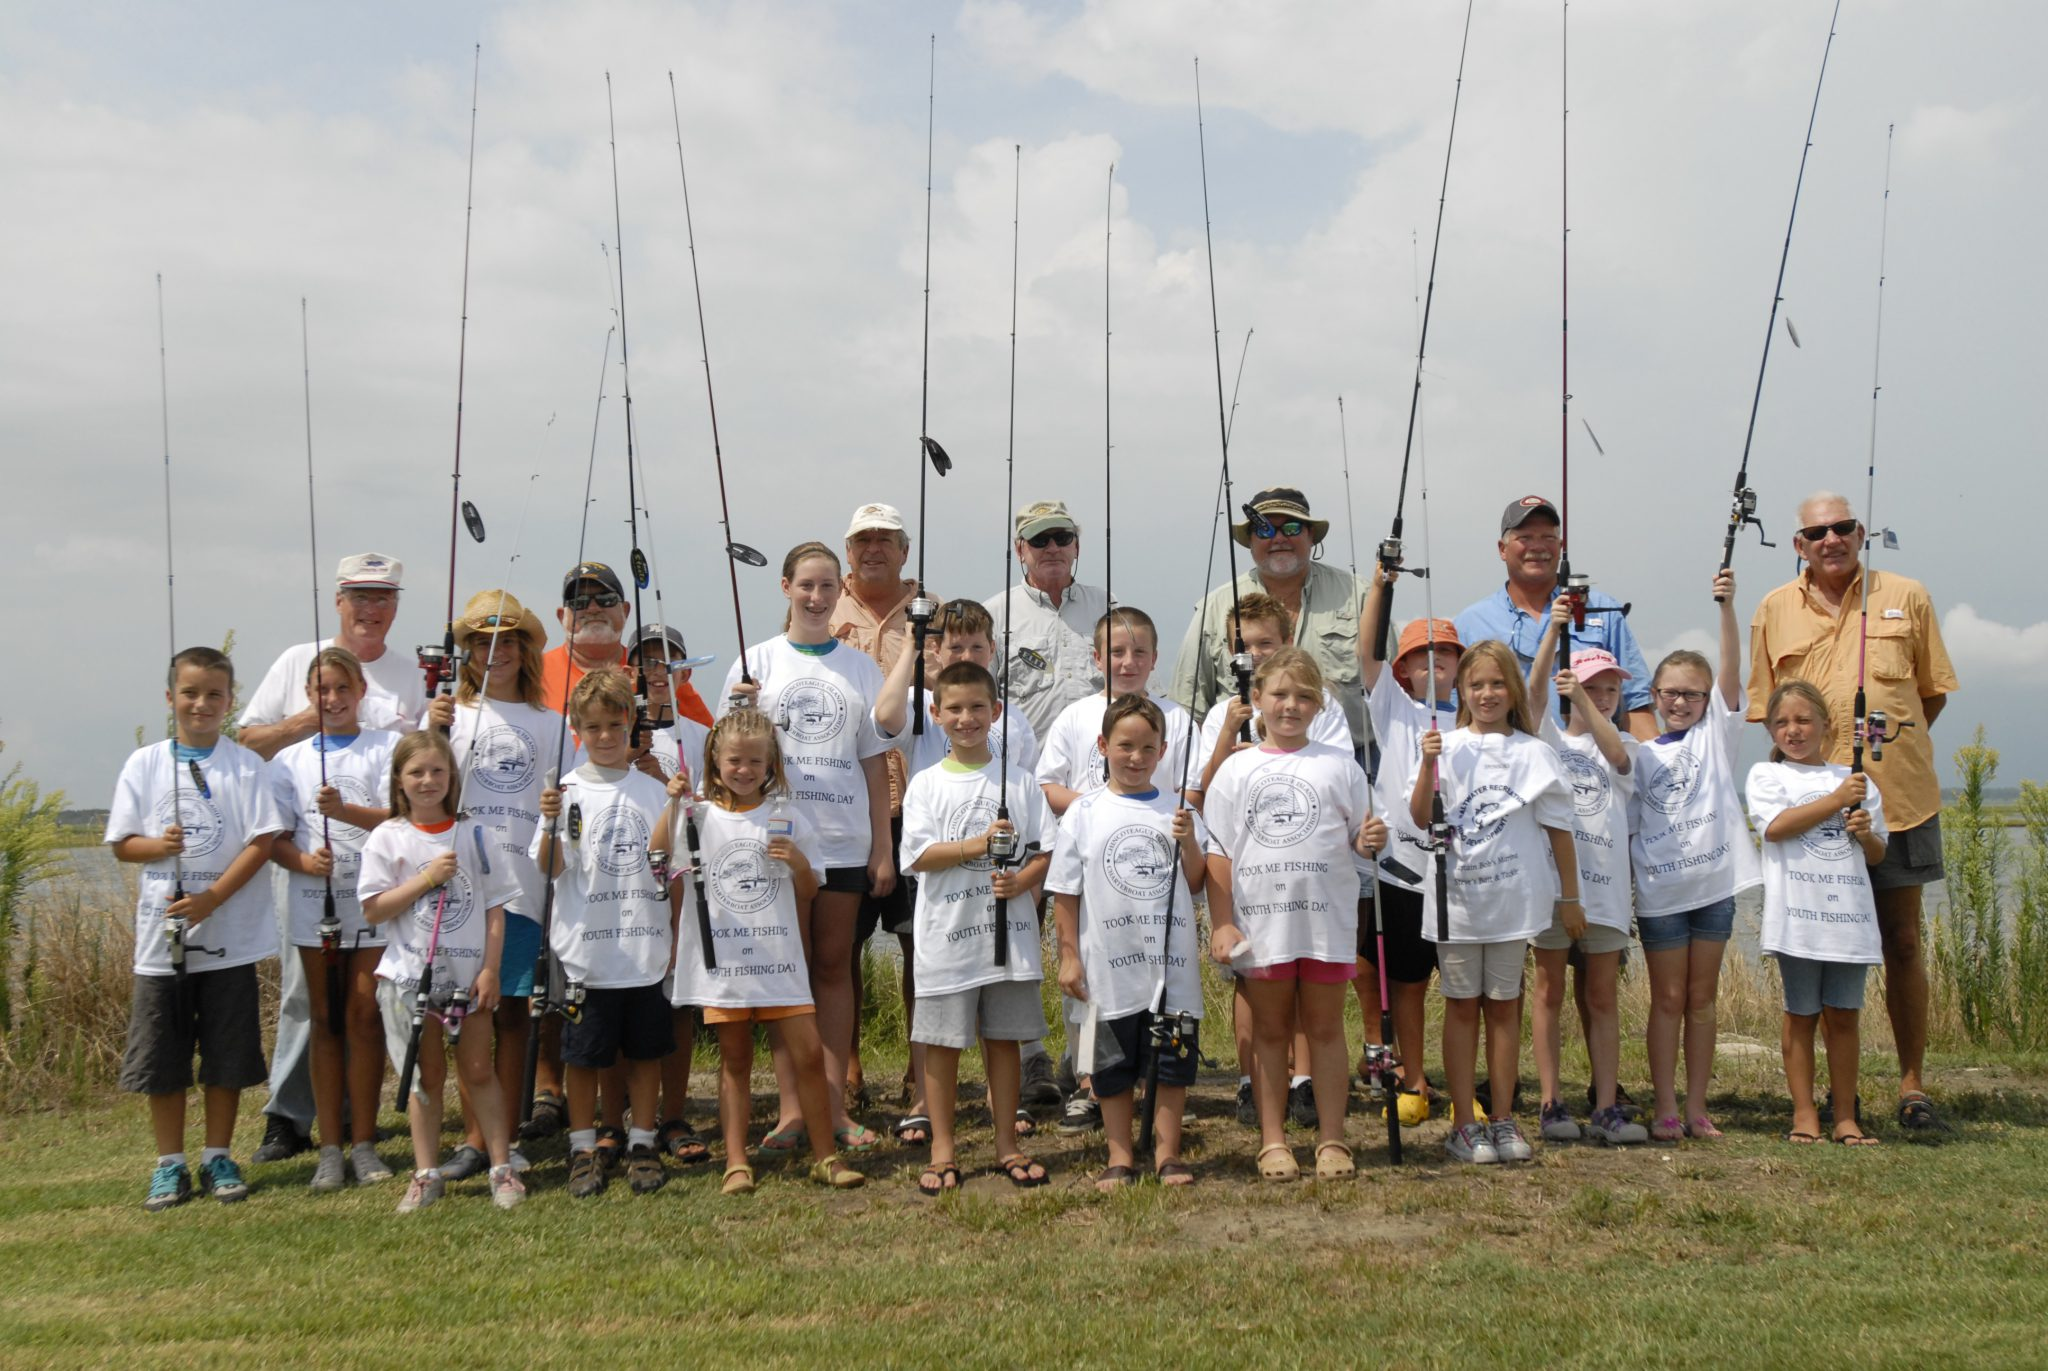 Atts https://www.chincoteaguechamber.com/wp-content/uploads/2018/02/kids-with-poles.jpg